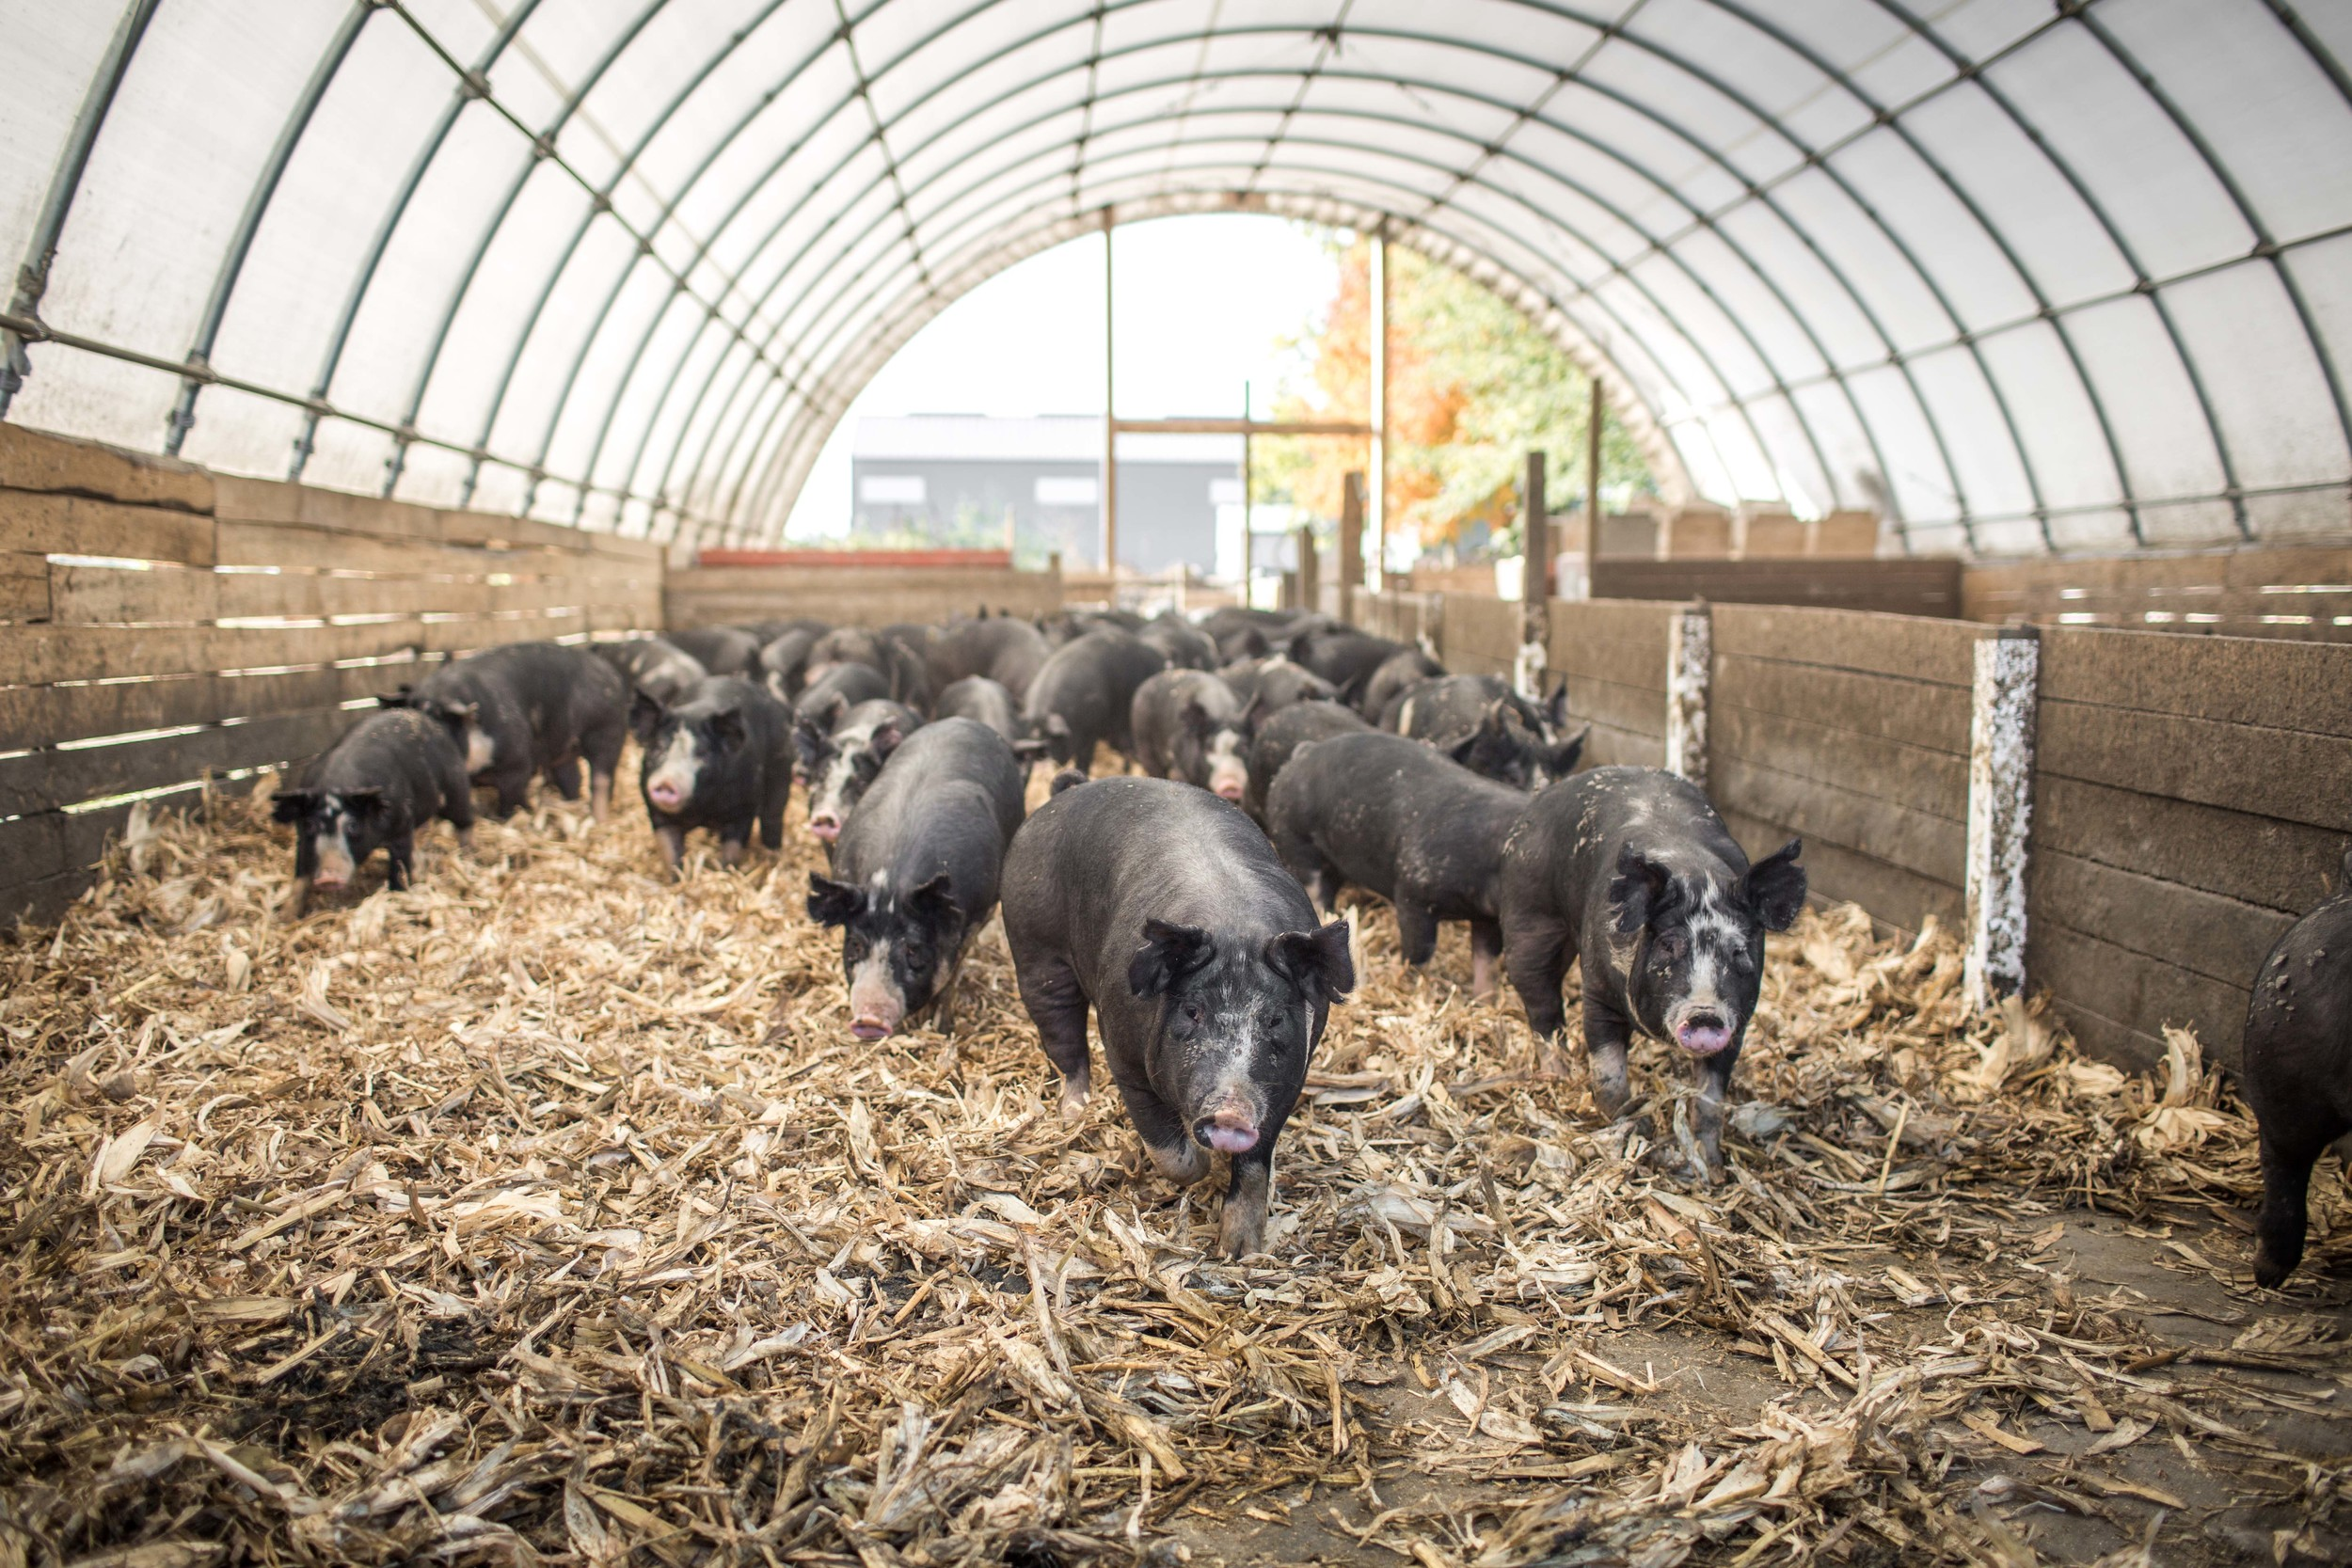 Many of our finishing pigs live in groups in open air hoop barns in West Liberty, Ohio. They are protected from the elements, yet get plenty of fresh air. We use corn stalks as bedding; it's one way we strive to reduce and reuse resources.